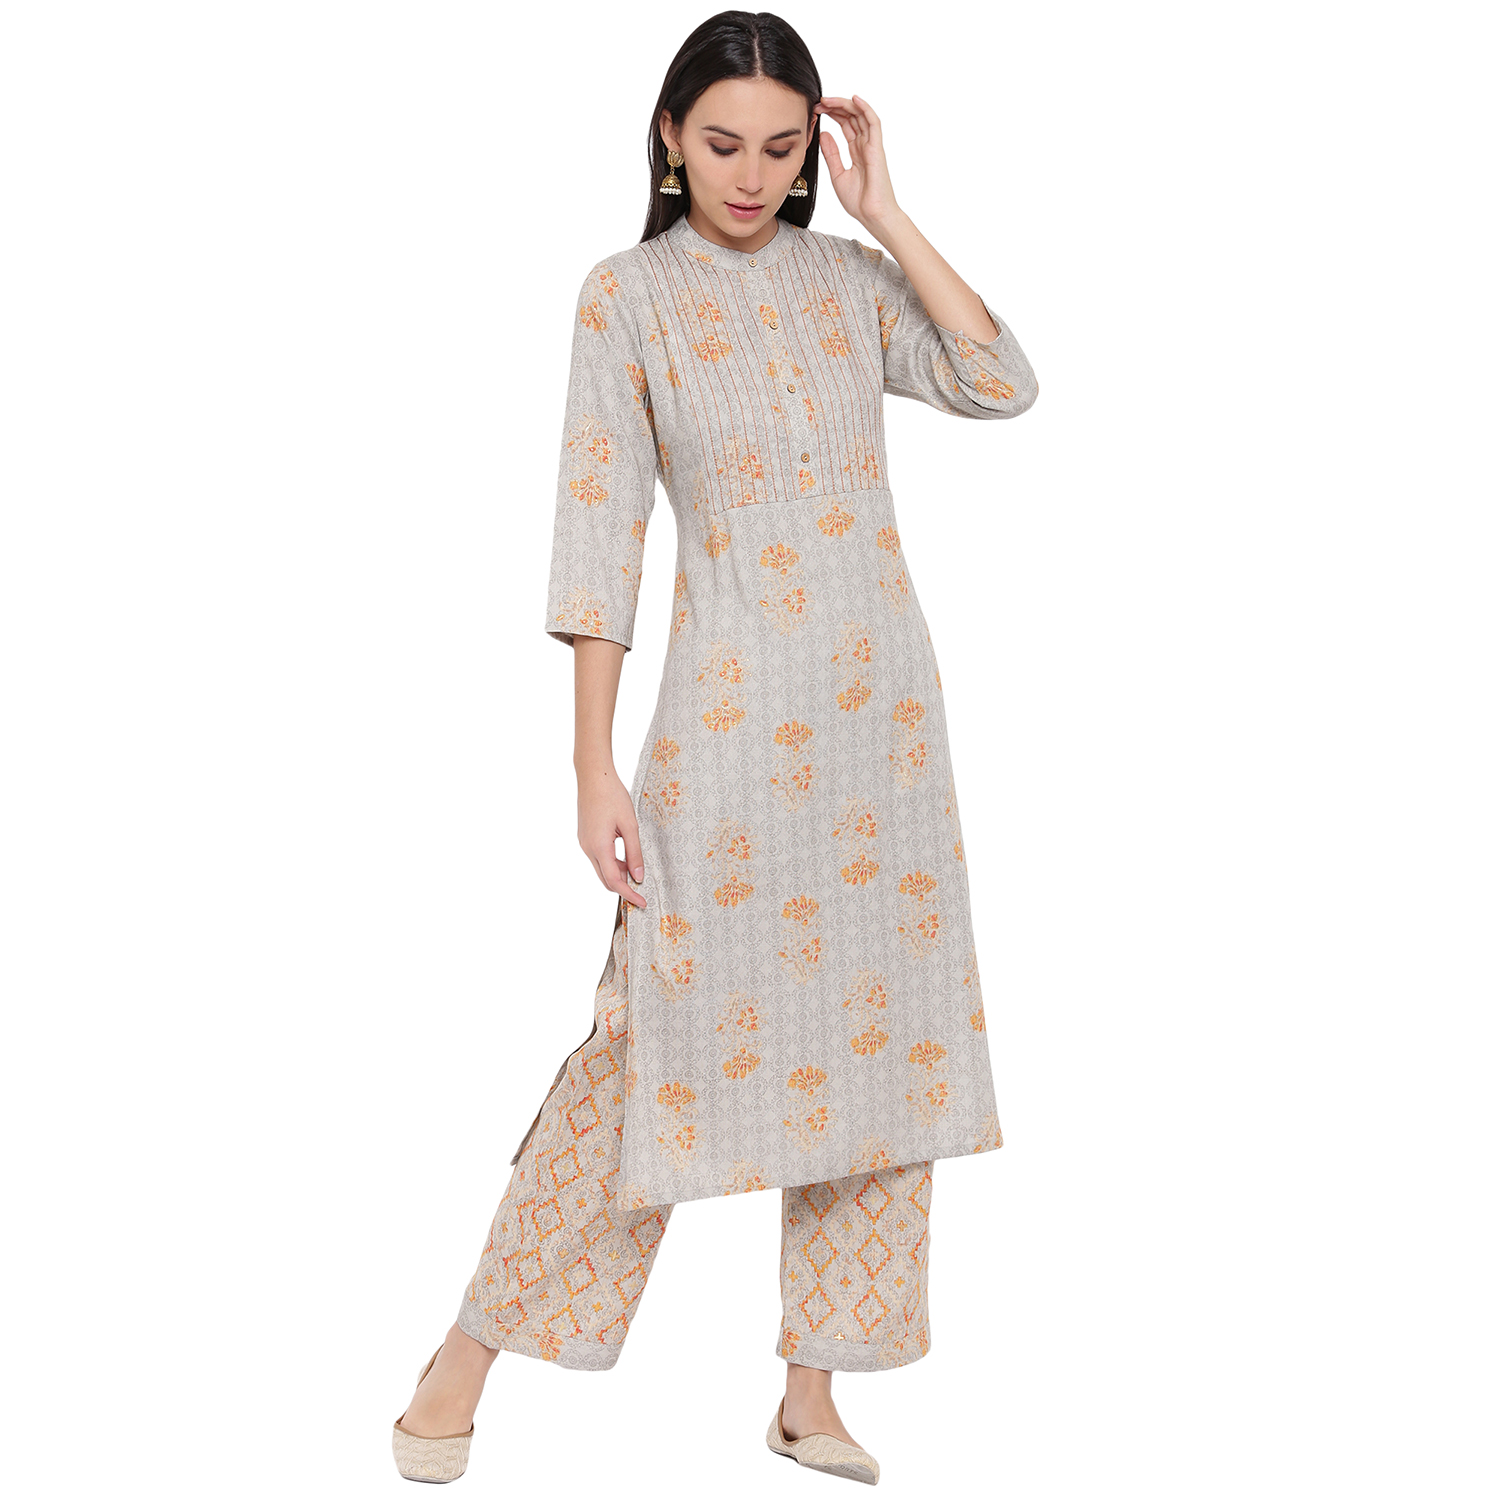 Fabnest | Fabnest womens rayon grey printed kurta and pant set with contrast stitch detail at yoke.